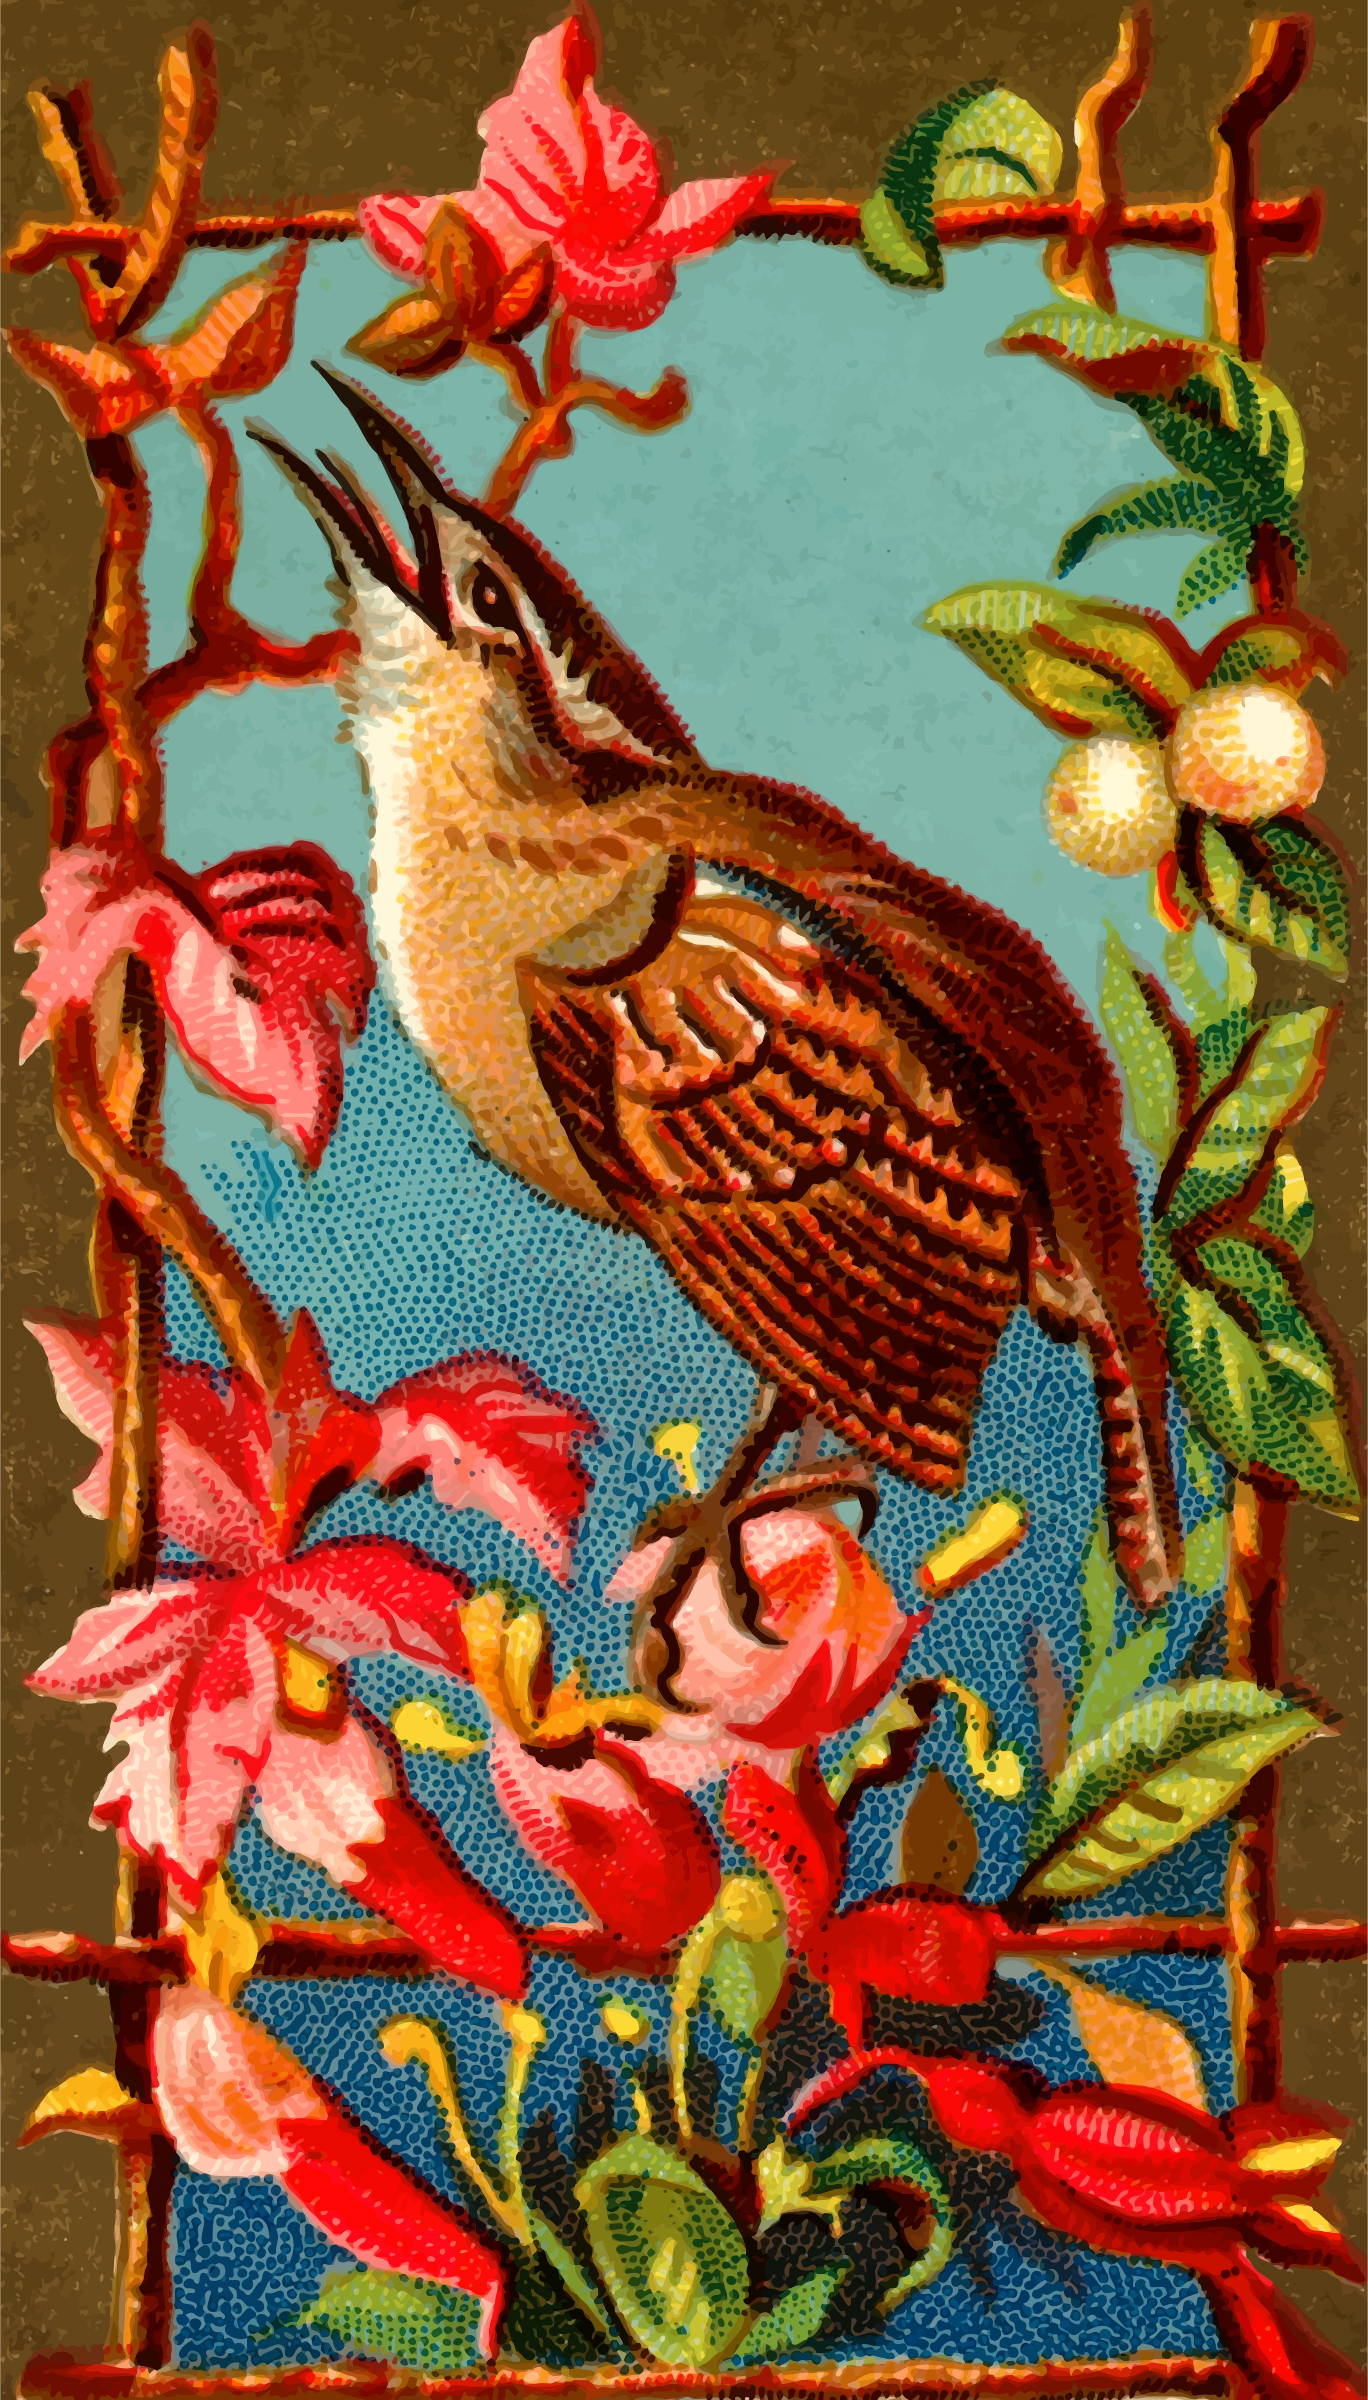 Cigarette card - Wren by Firkin